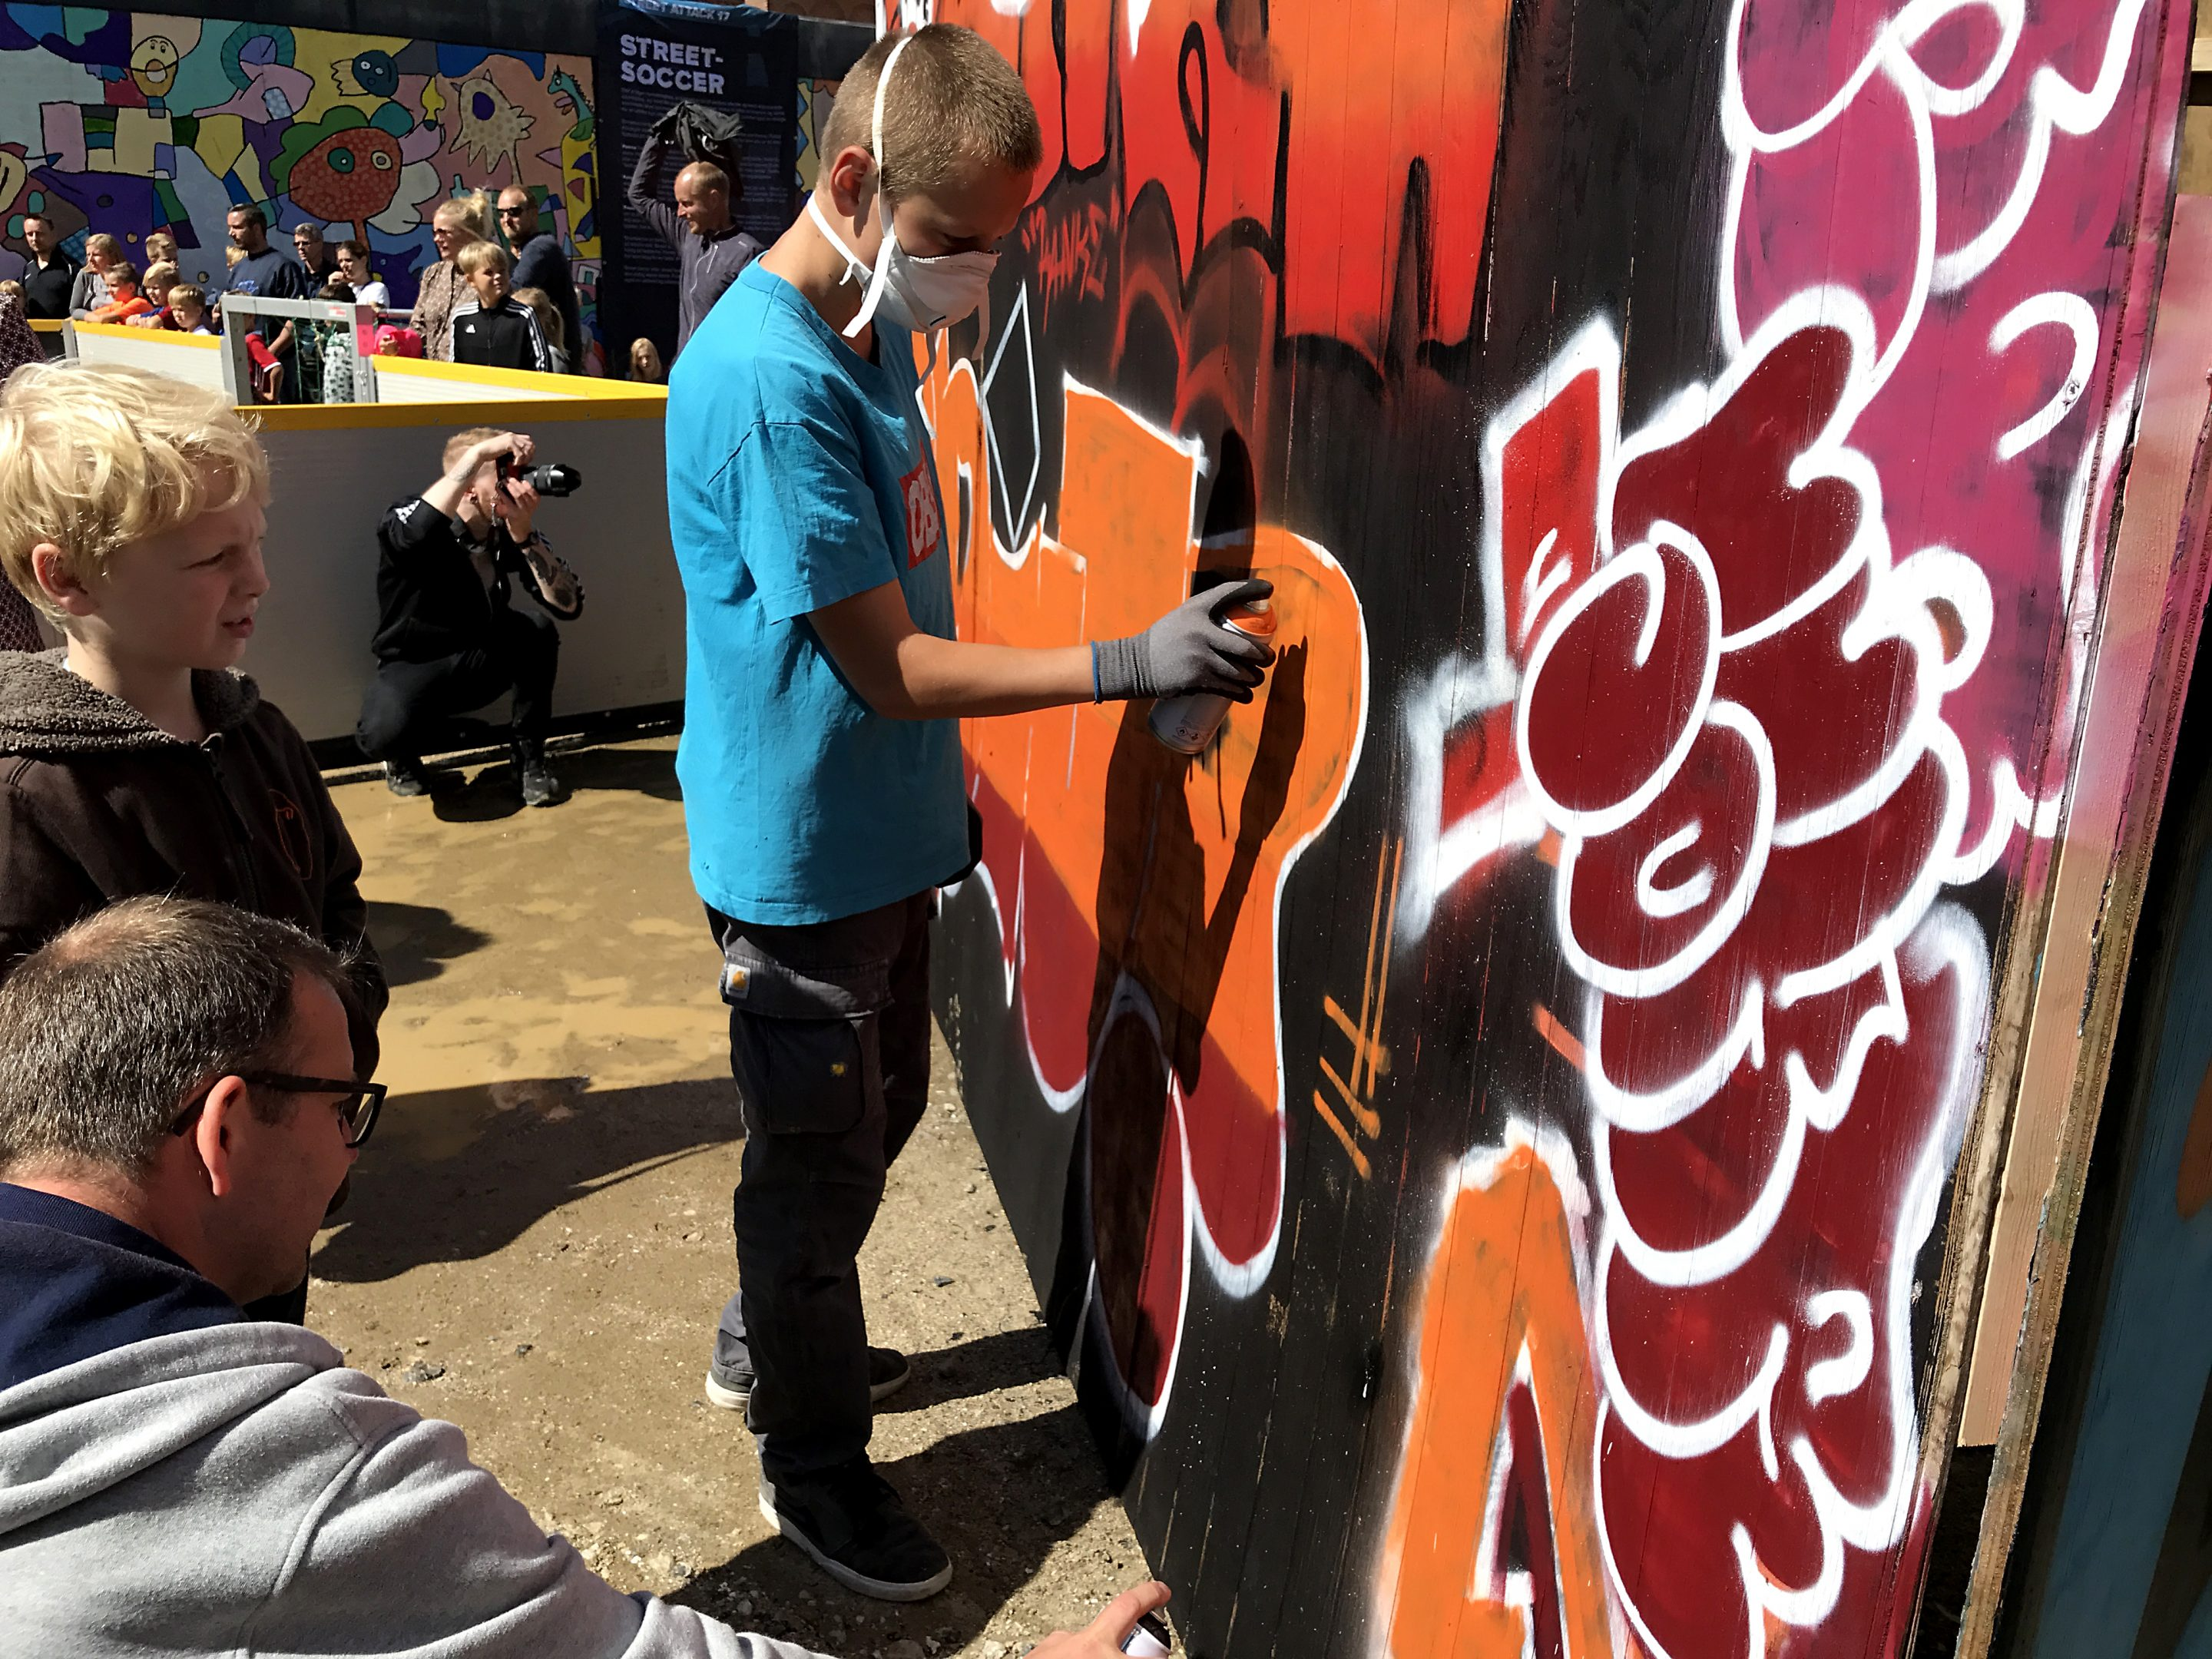 Ung graffitimaler Street Attack 2017 i silkeborg